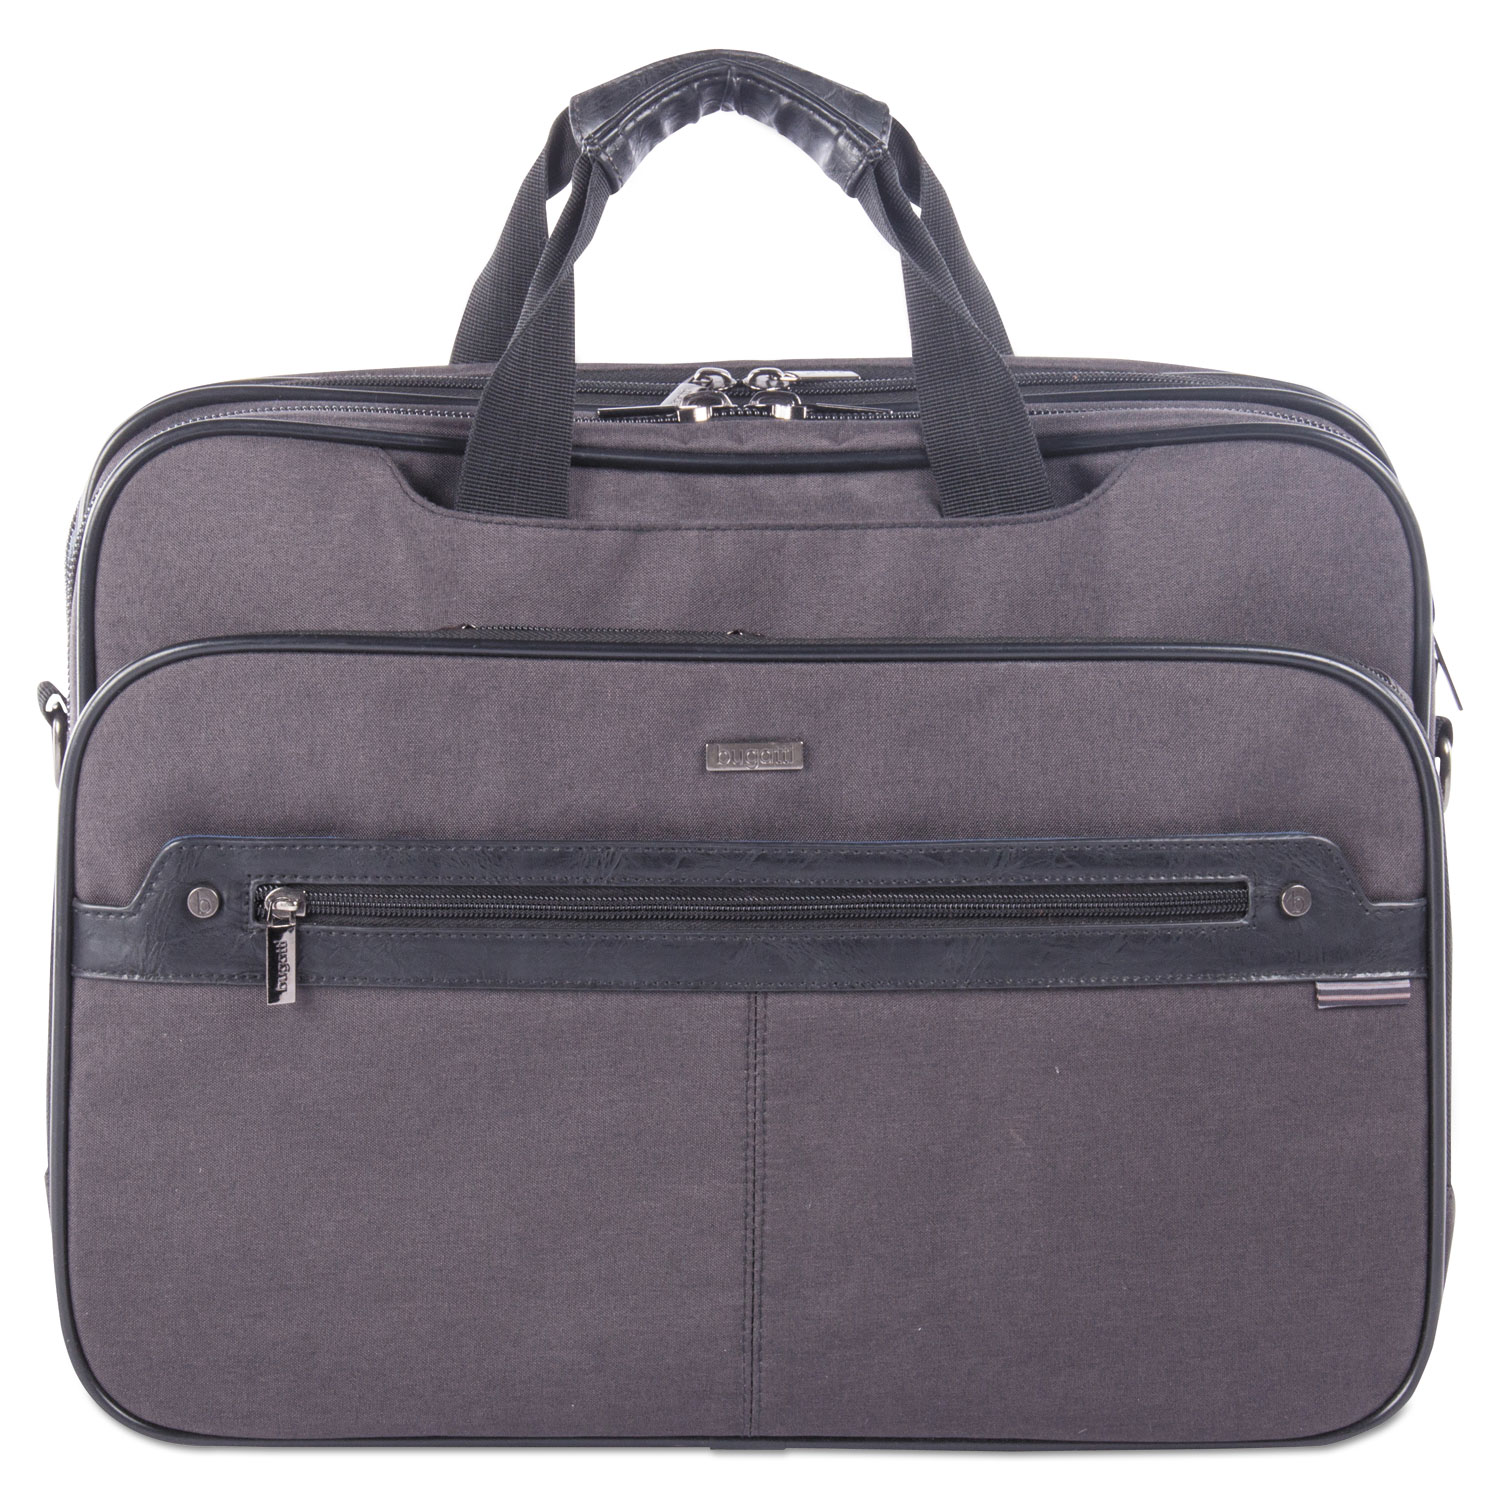 """Harry Executive Briefcase, 16.5"""" x 4.75"""" x 12.5"""", Nylon/Synthetic Leather, Gray"""